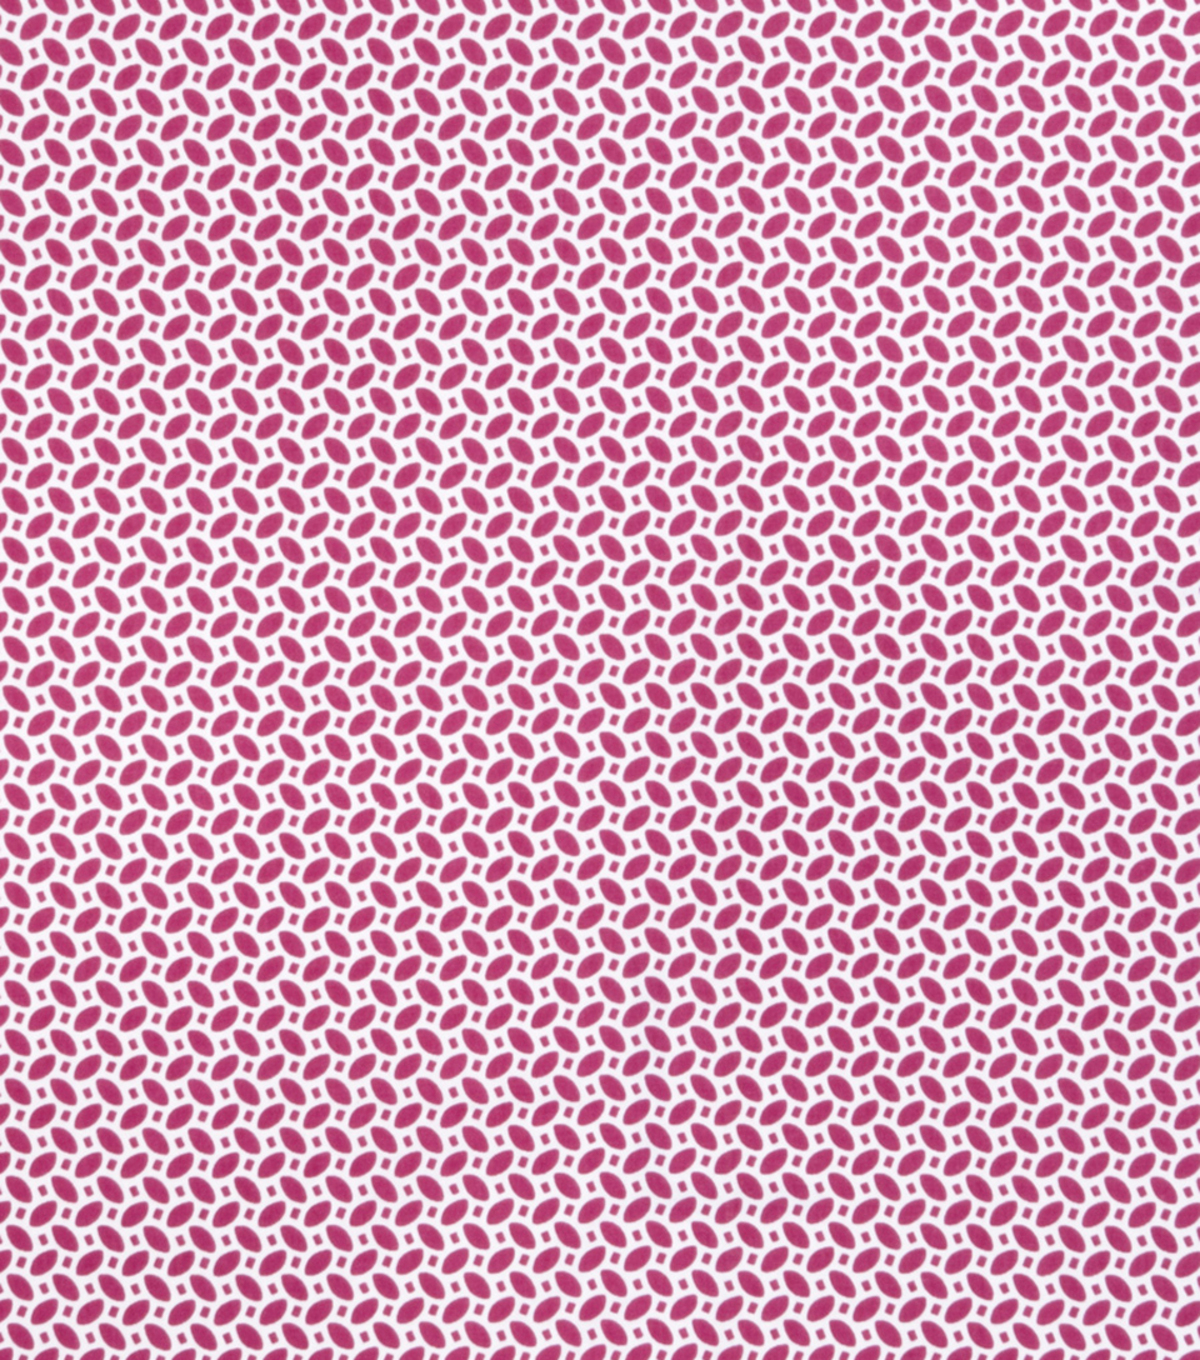 "Home Decor 8""x8"" Fabric Swatch-Eaton Square Giggles Raspberry"